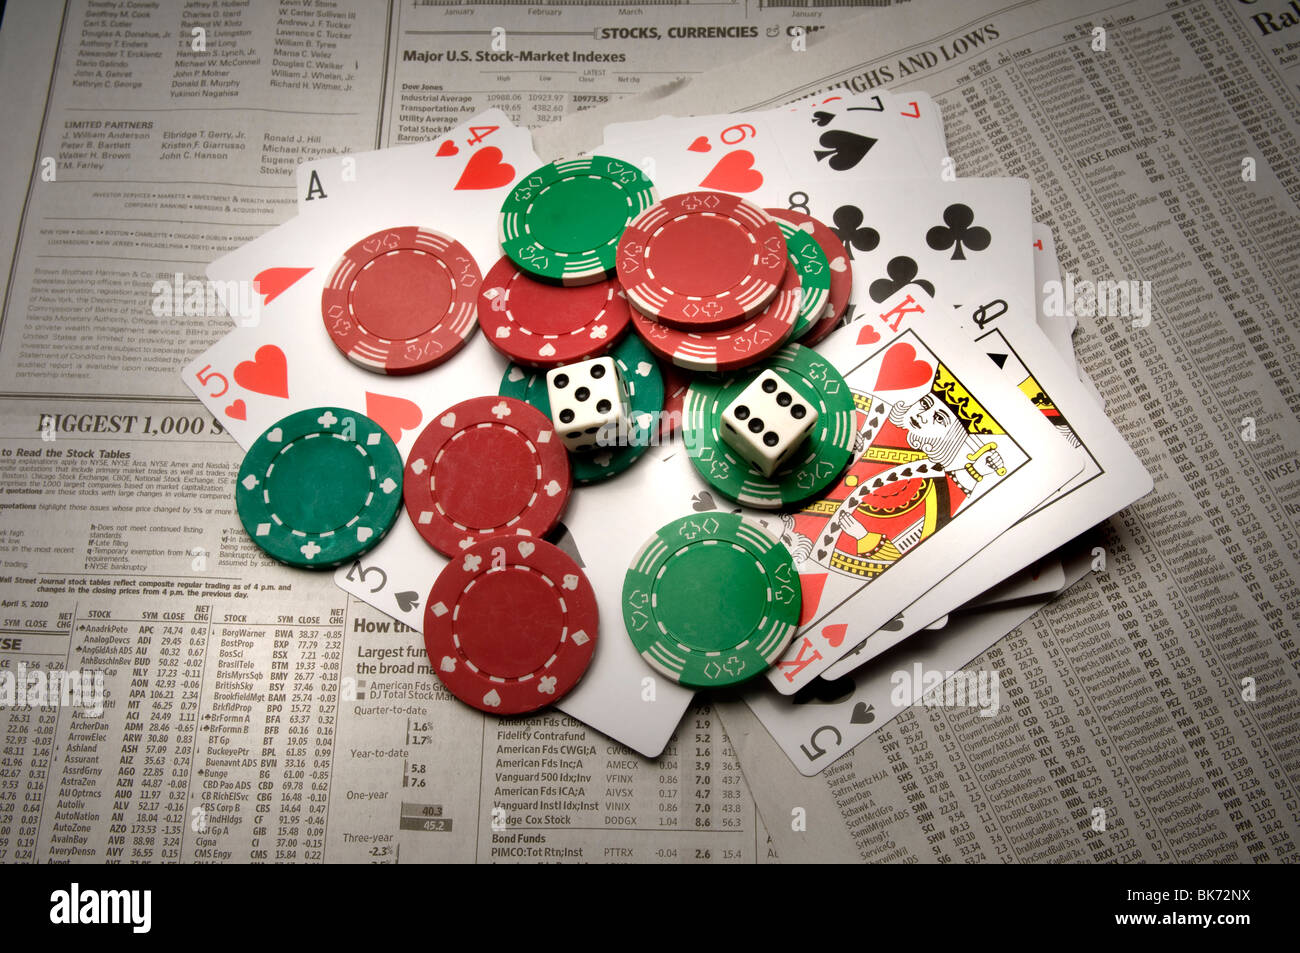 Gambling stock market stock photo royalty free image 29044678 alamy gambling stock market biocorpaavc Image collections